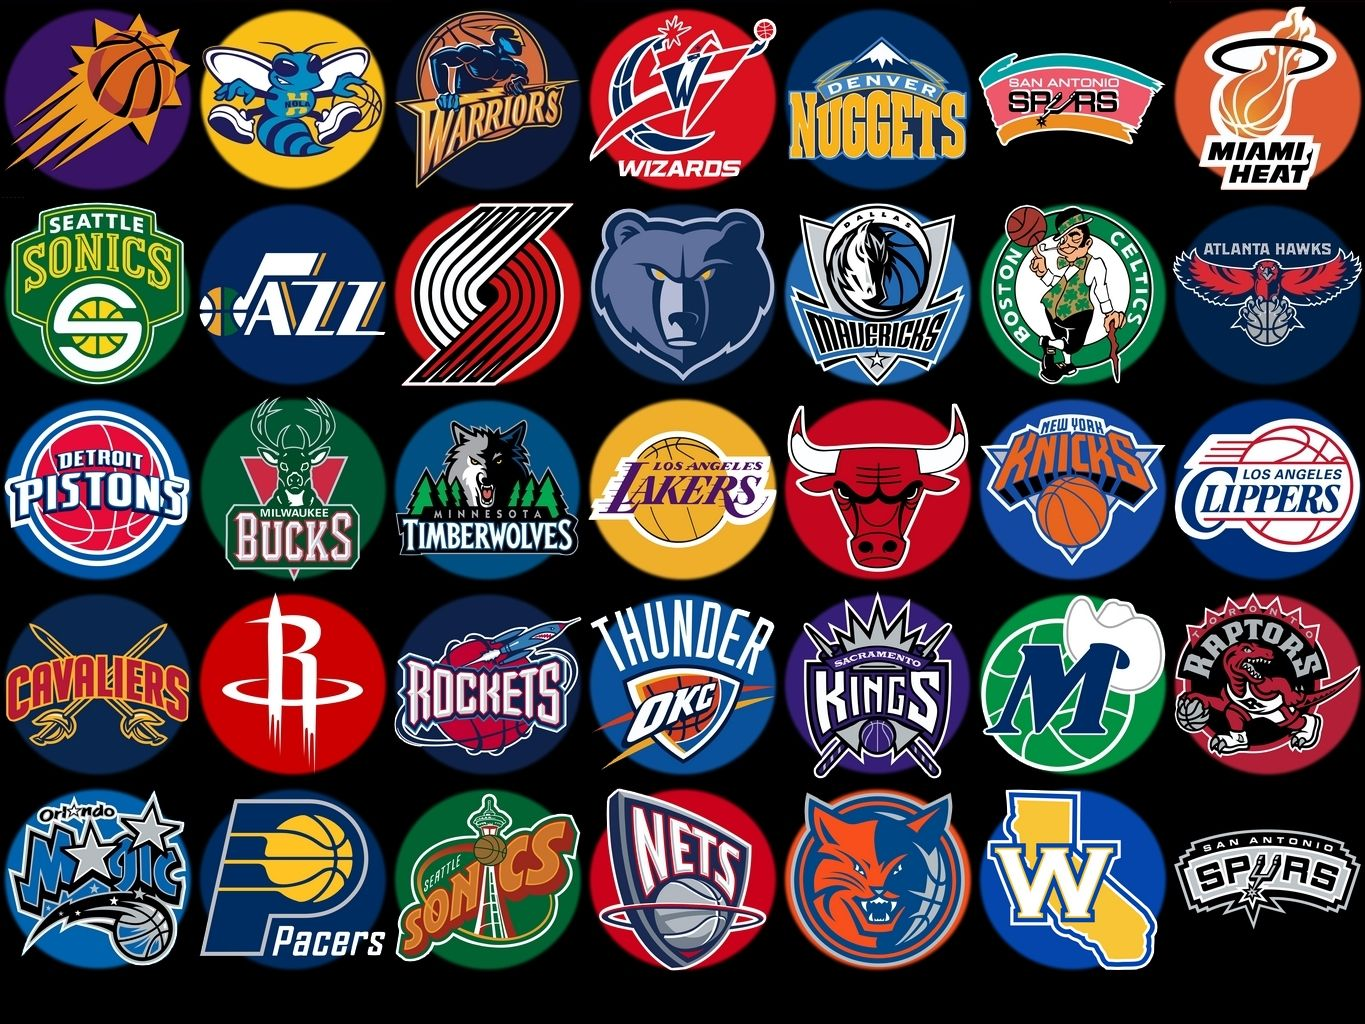 ALL ABOUT SPORTS COMPLEX Nba logo, Team wallpaper, Nba teams